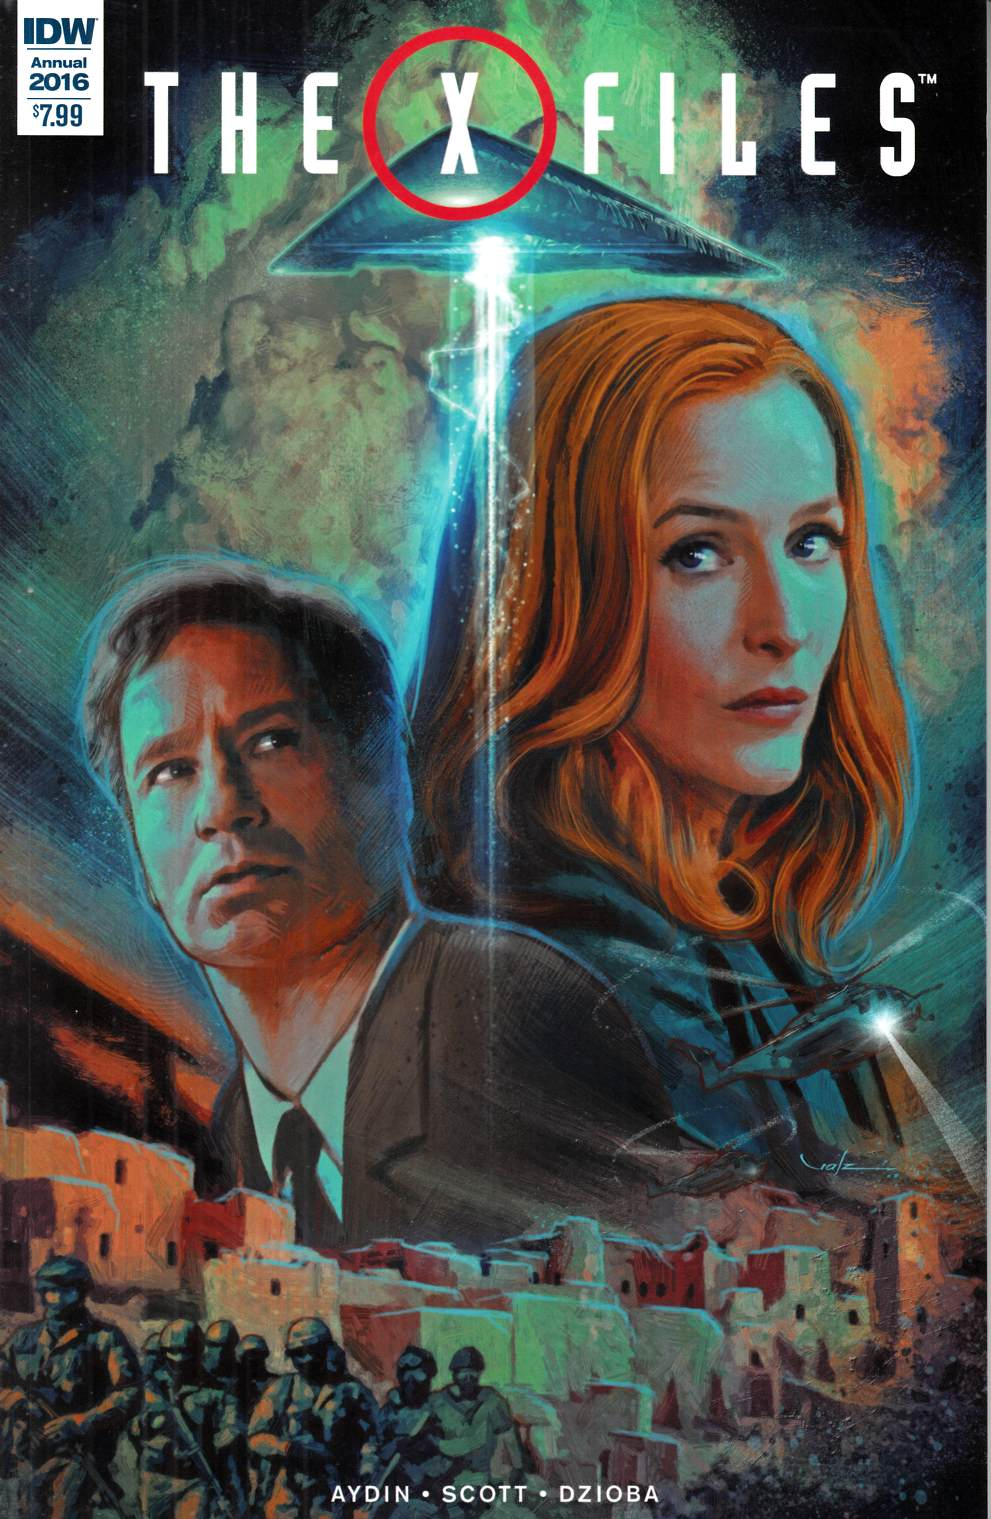 X-Files Annual 2016 #1 [IDW Comic] LARGE